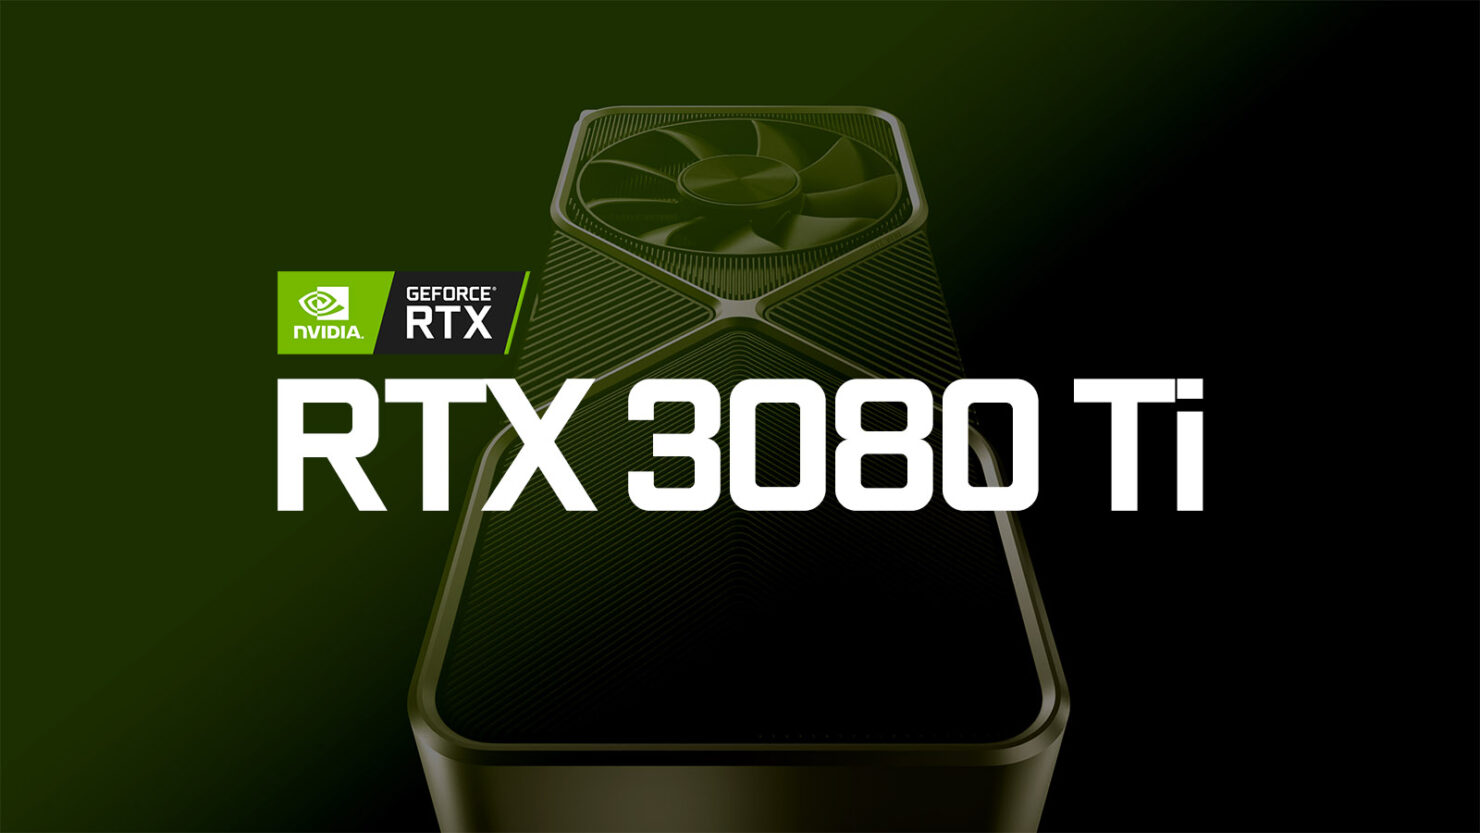 nvidia-geforce-rtx-3080-ti-12-gb-enthusiast-gaming-graphics-card-reportedly-pushed-back-to-may